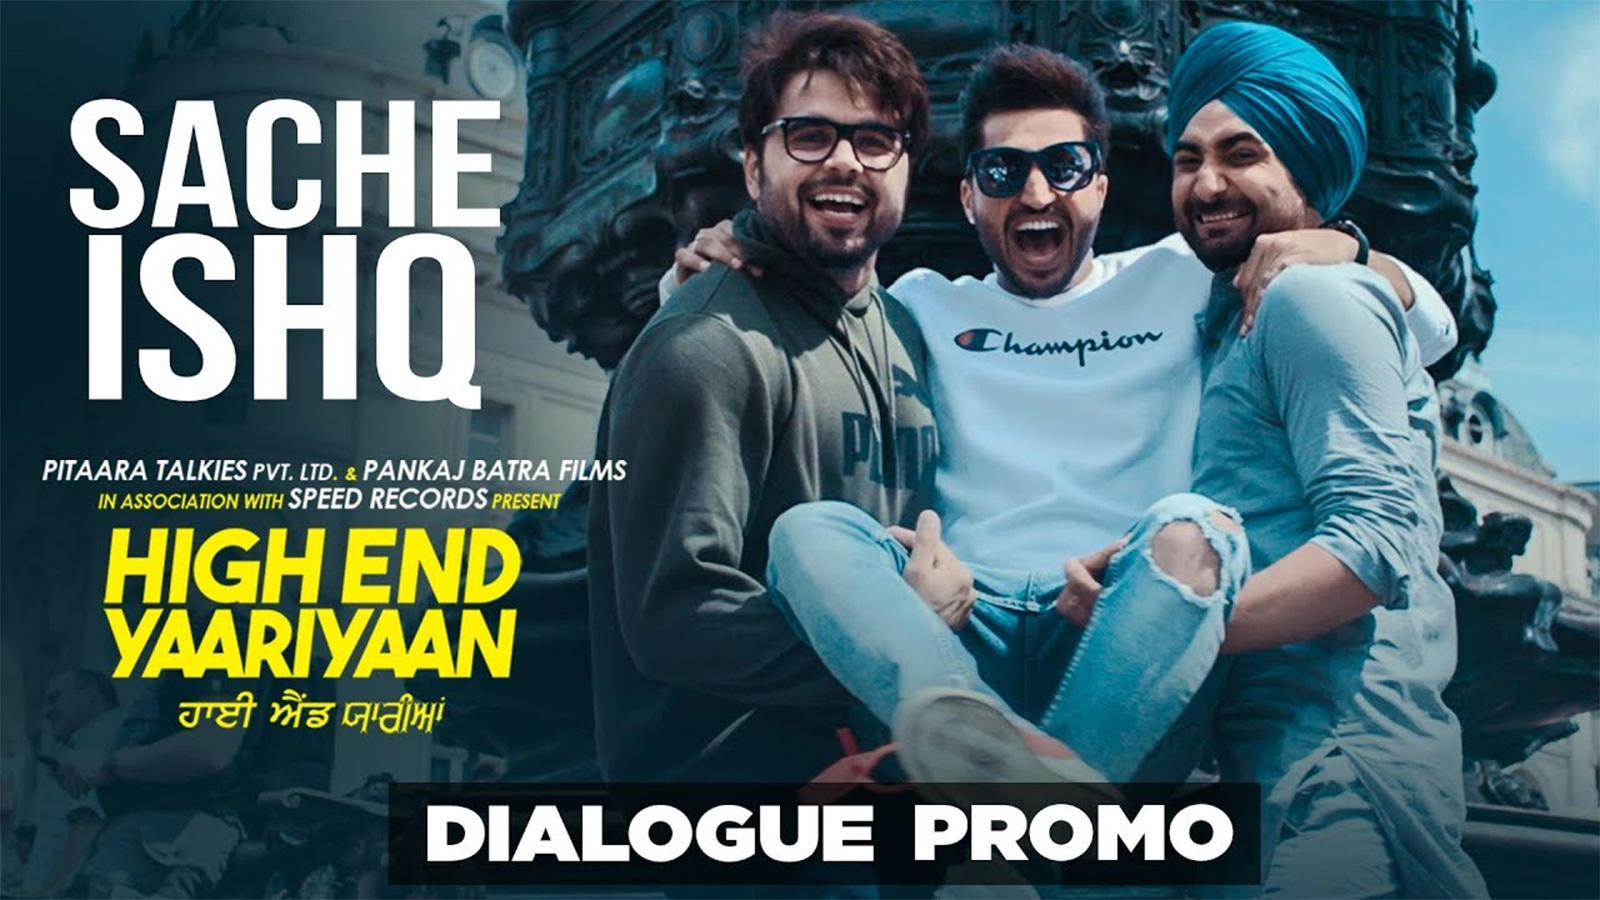 High End Yaariyaan - Dialogue Promo